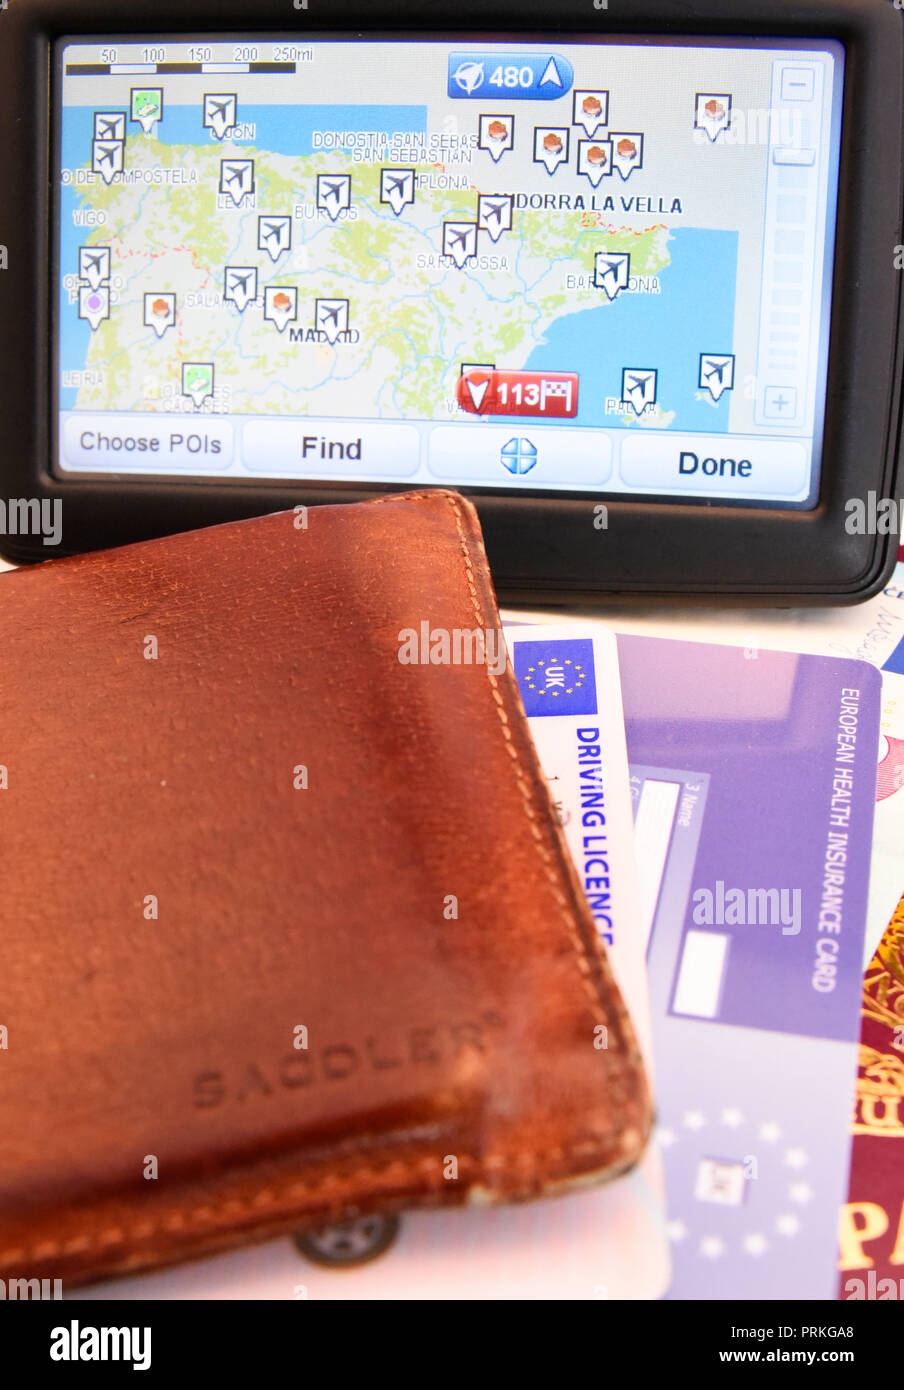 Satnav for Spain with EU United Kingdom of Great Britain and Northern Ireland biometric passport with Euro cash notes, EHIC card, driving licence - Stock Image